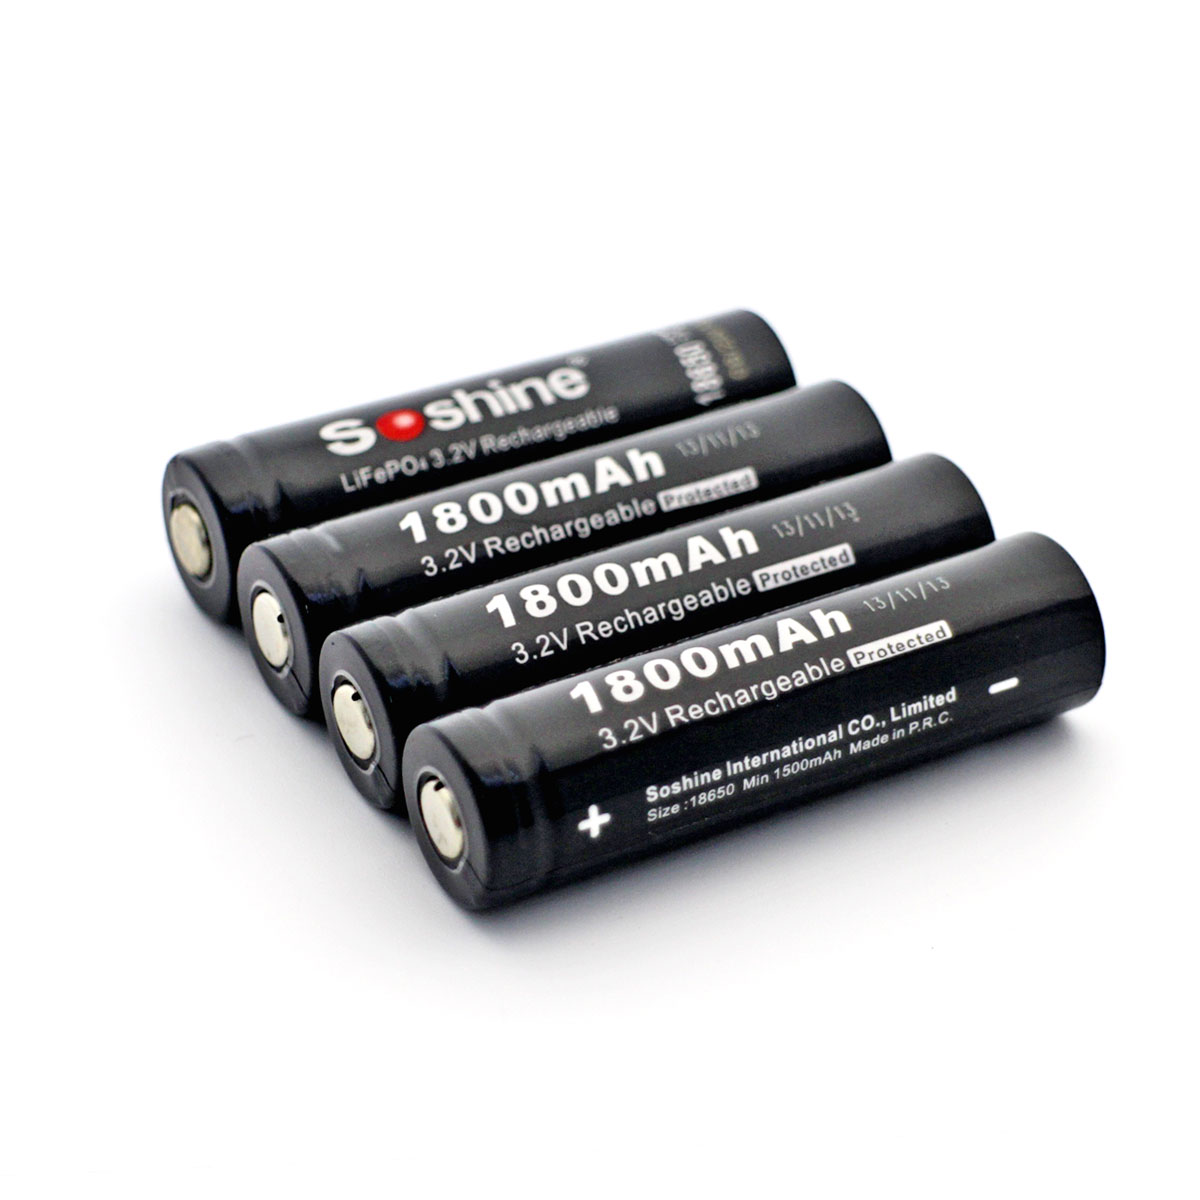 Soshine 18650 LiFePO4 3.2V Rechargeable Battery With PCB Protected Board :1800mAh